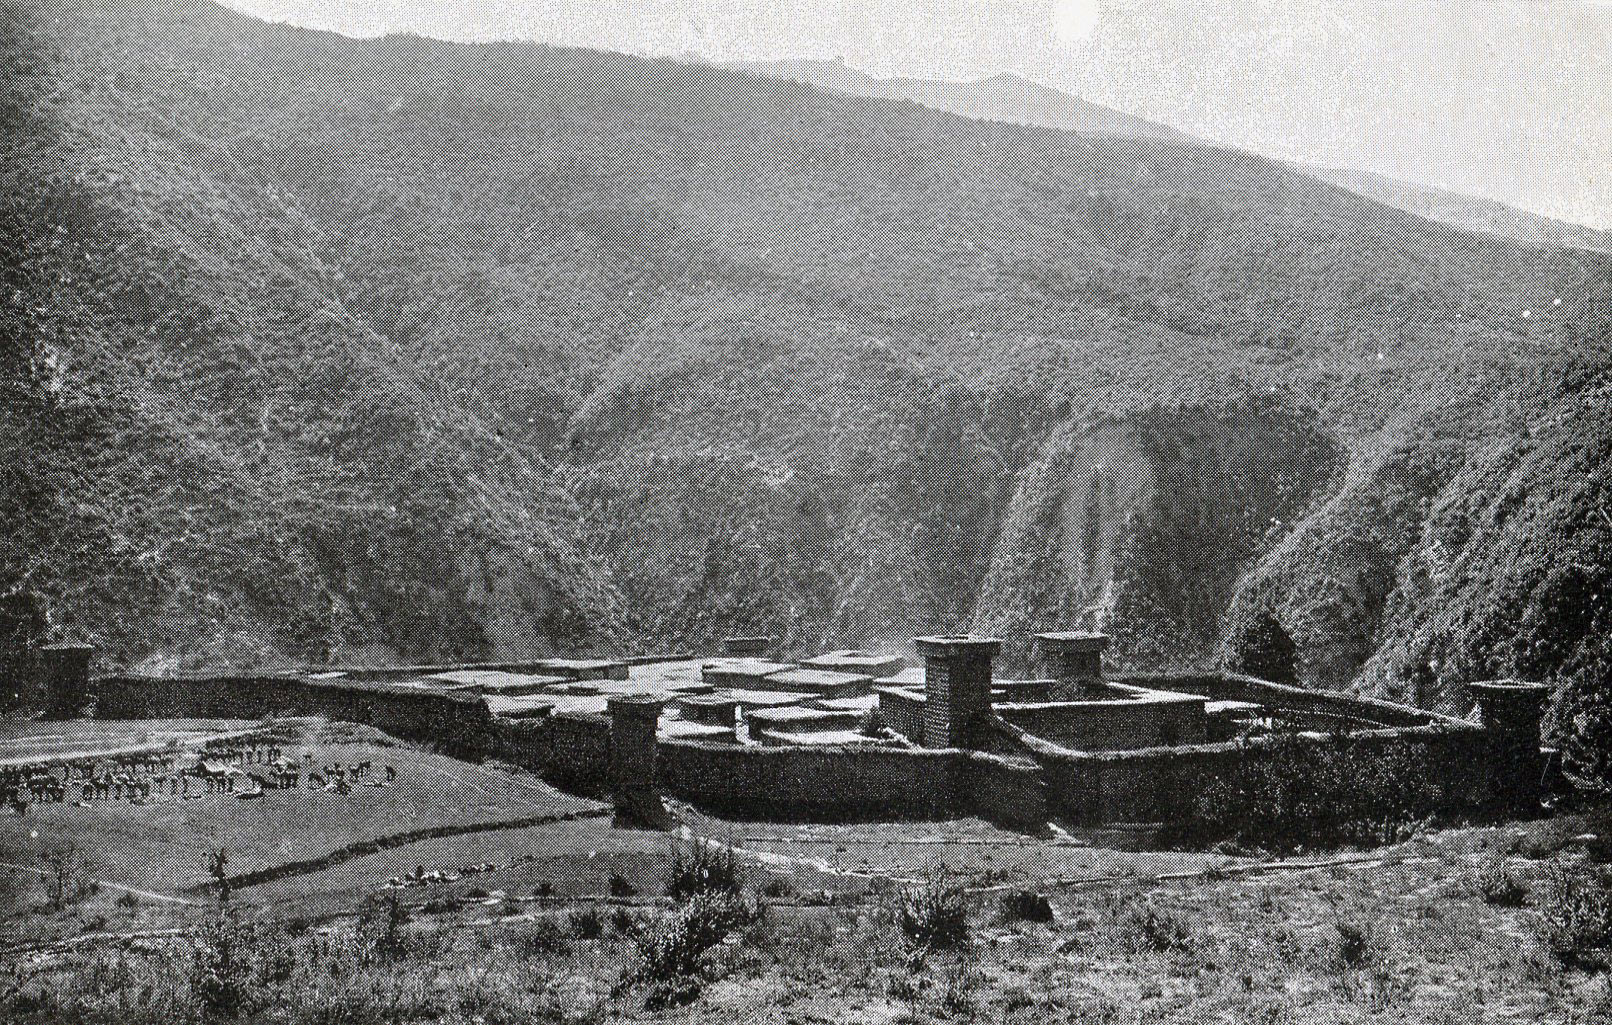 Dir Fort: Siege and Relief of Chitral, 3rd March to 20th April 1895 on the North-West Frontier of India